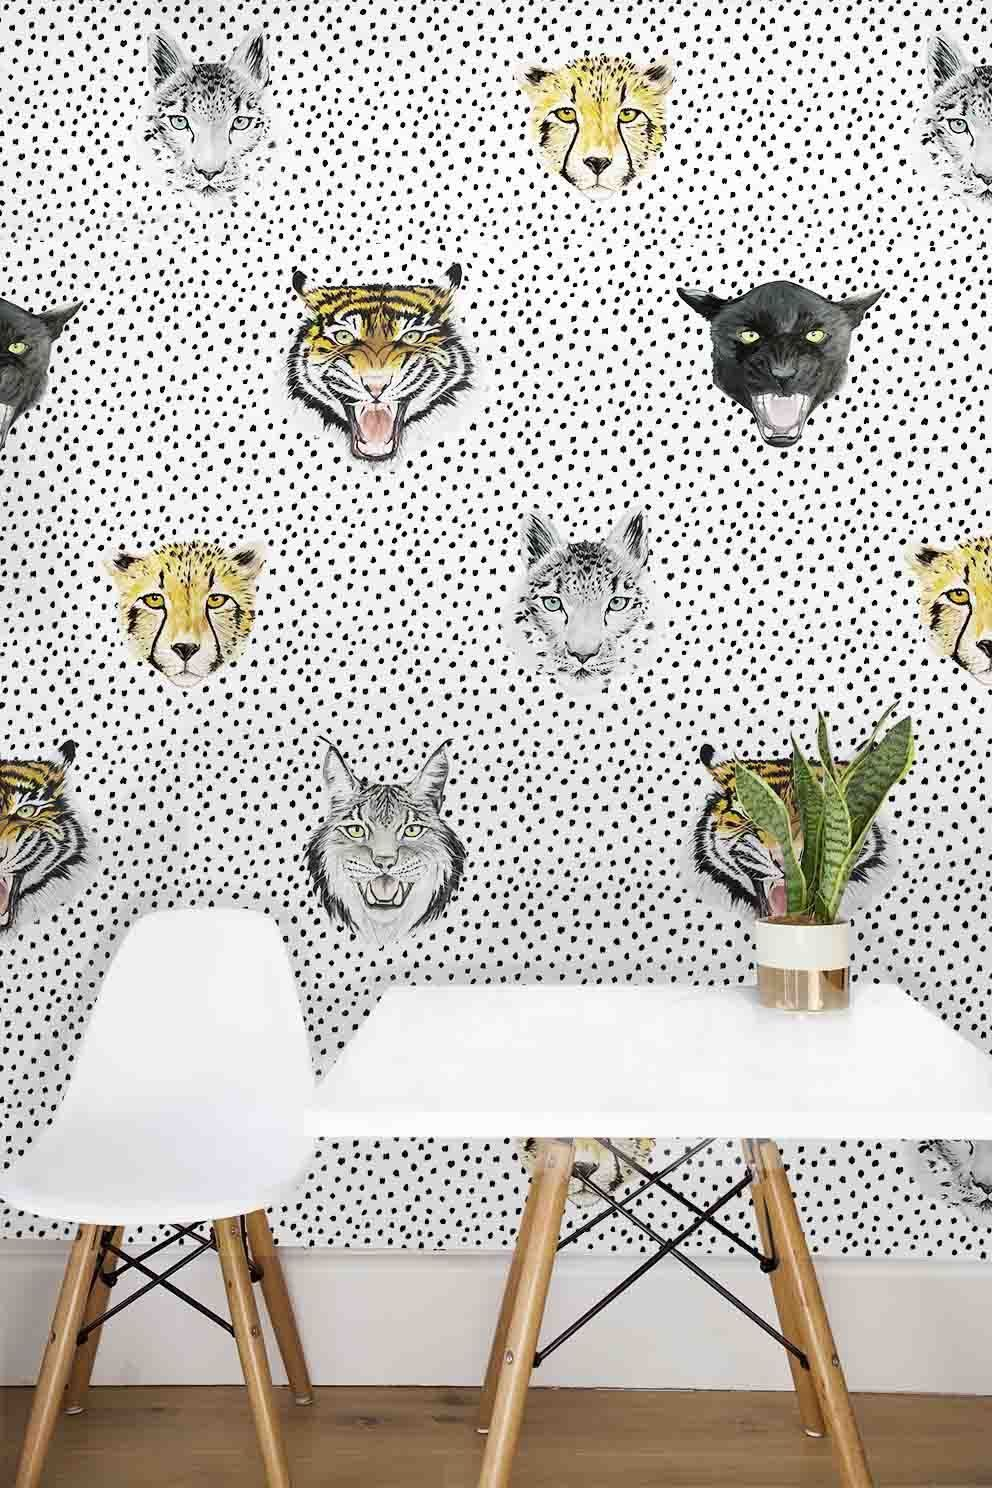 This Wallpaper Is Unisex It S So Cool And Modern Tigers Jaguars